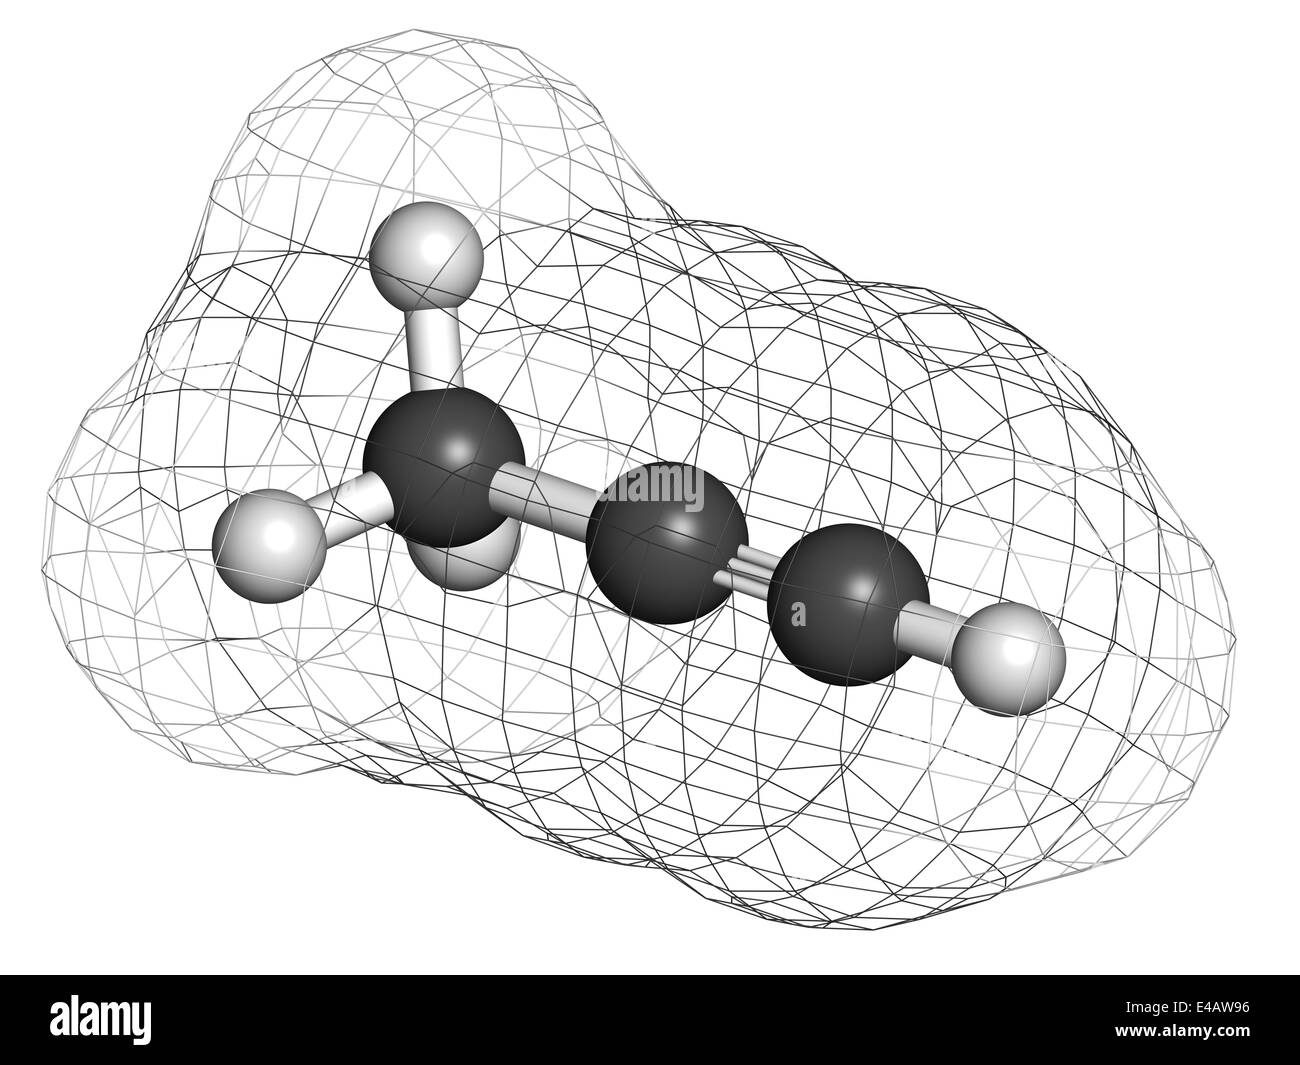 Welding Gas Black And White Stock Photos Images Alamy Diagram Methylacetylene Propyne Molecule Used In Rocket Fuel